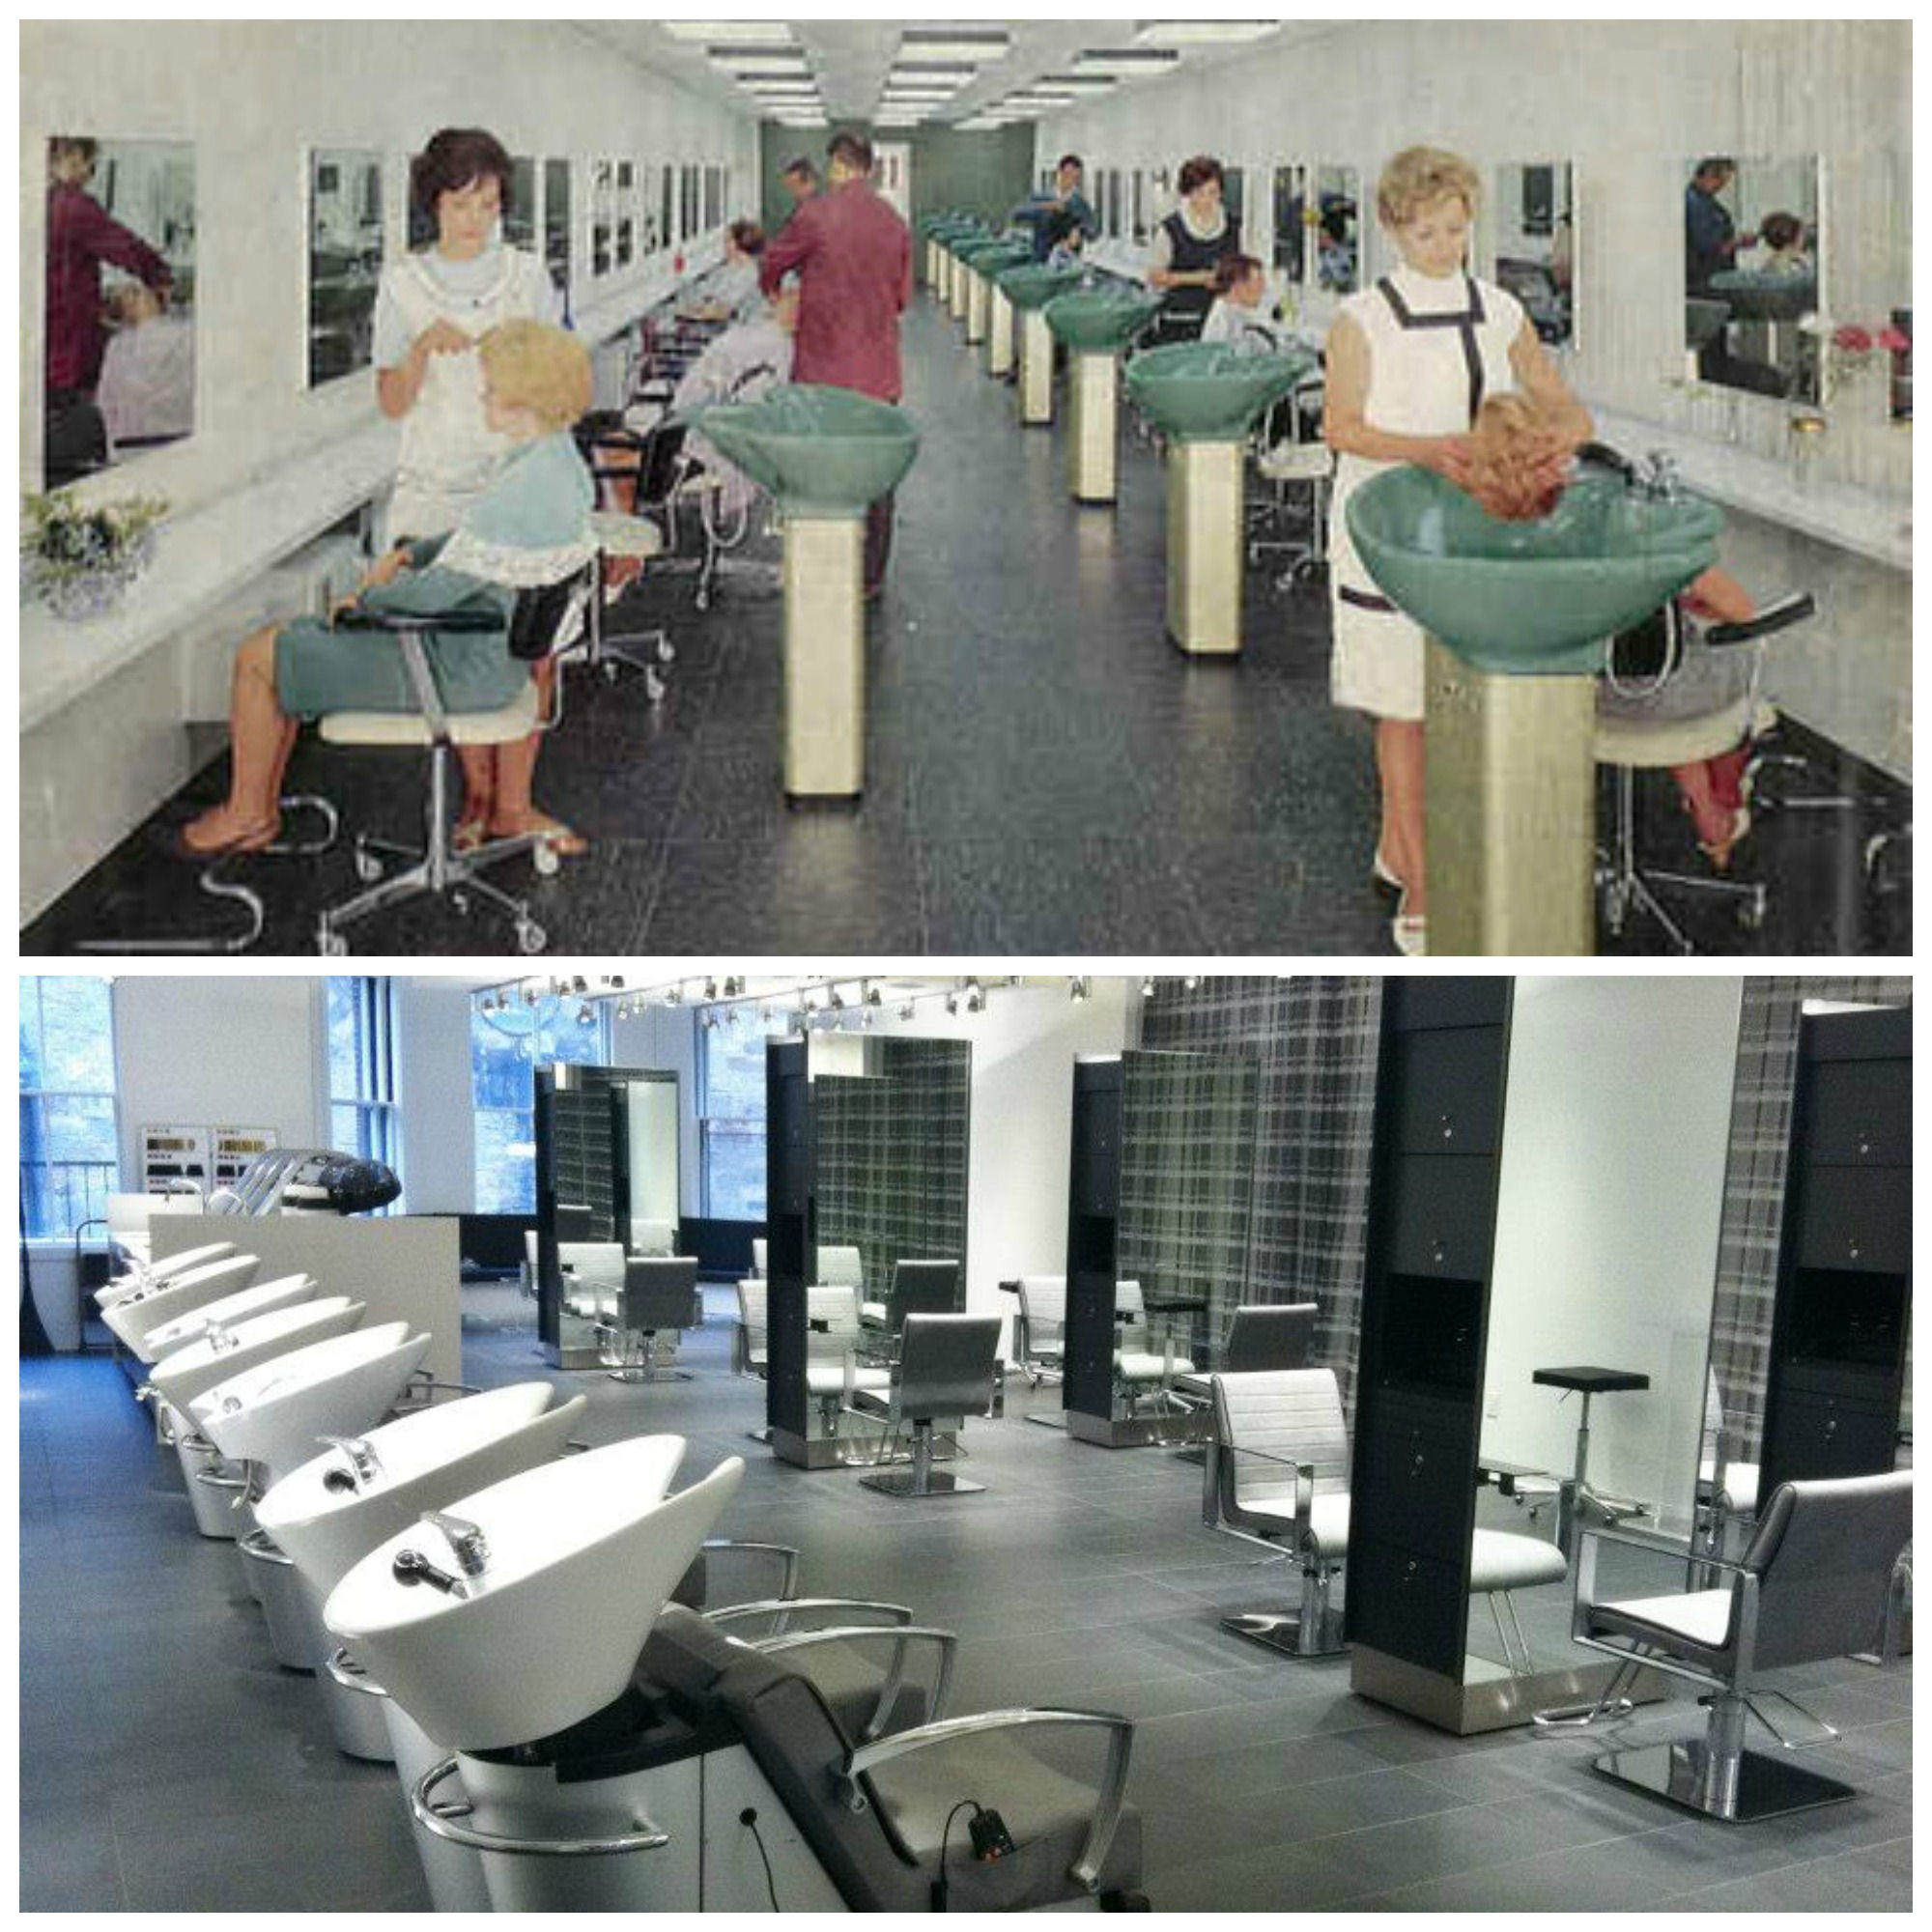 Salon collage then and now